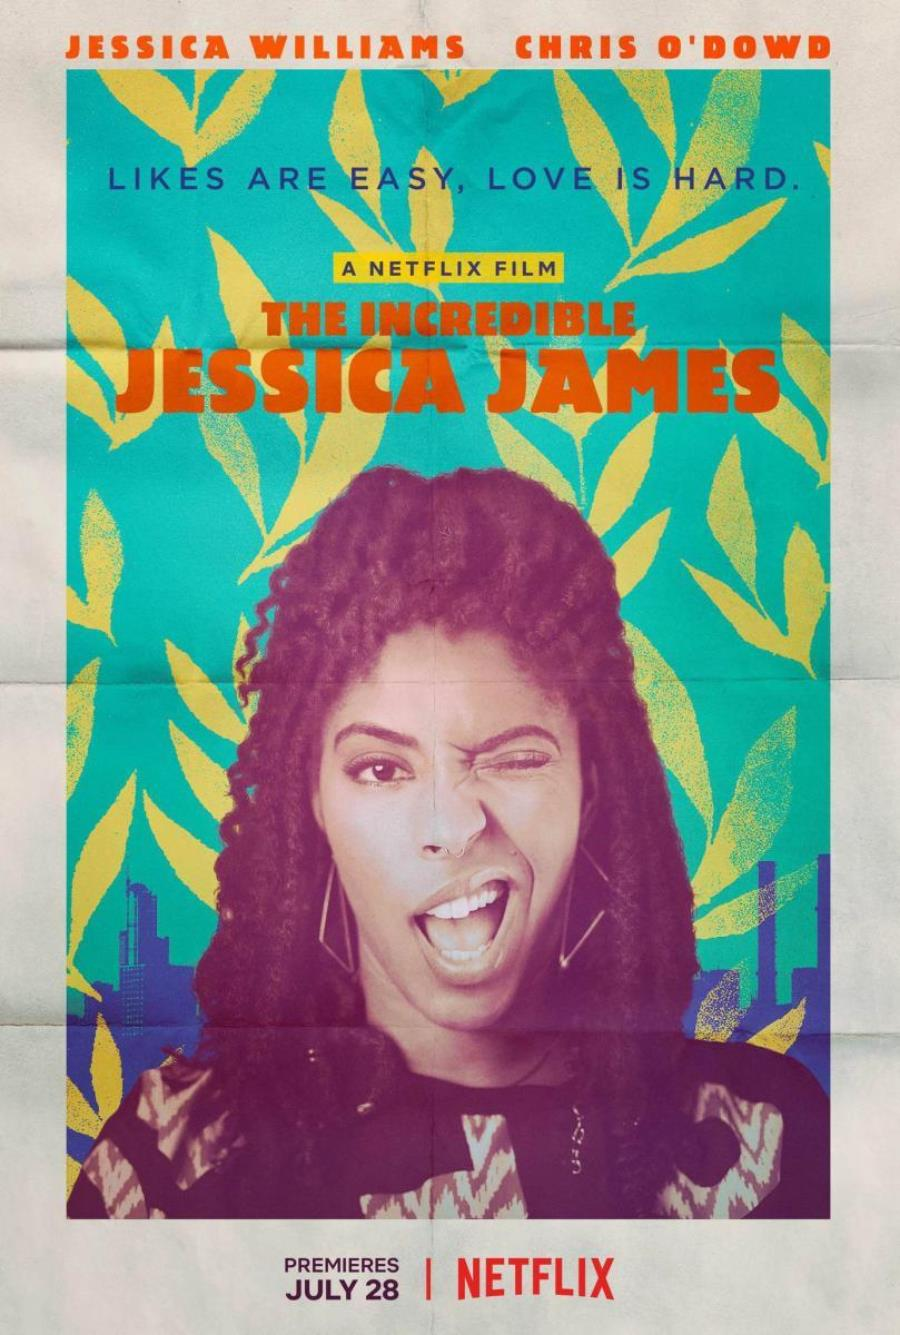 LA INCREIBLE JESSICA JAMES(1). LA INCREIBLE JESSICA JAMES